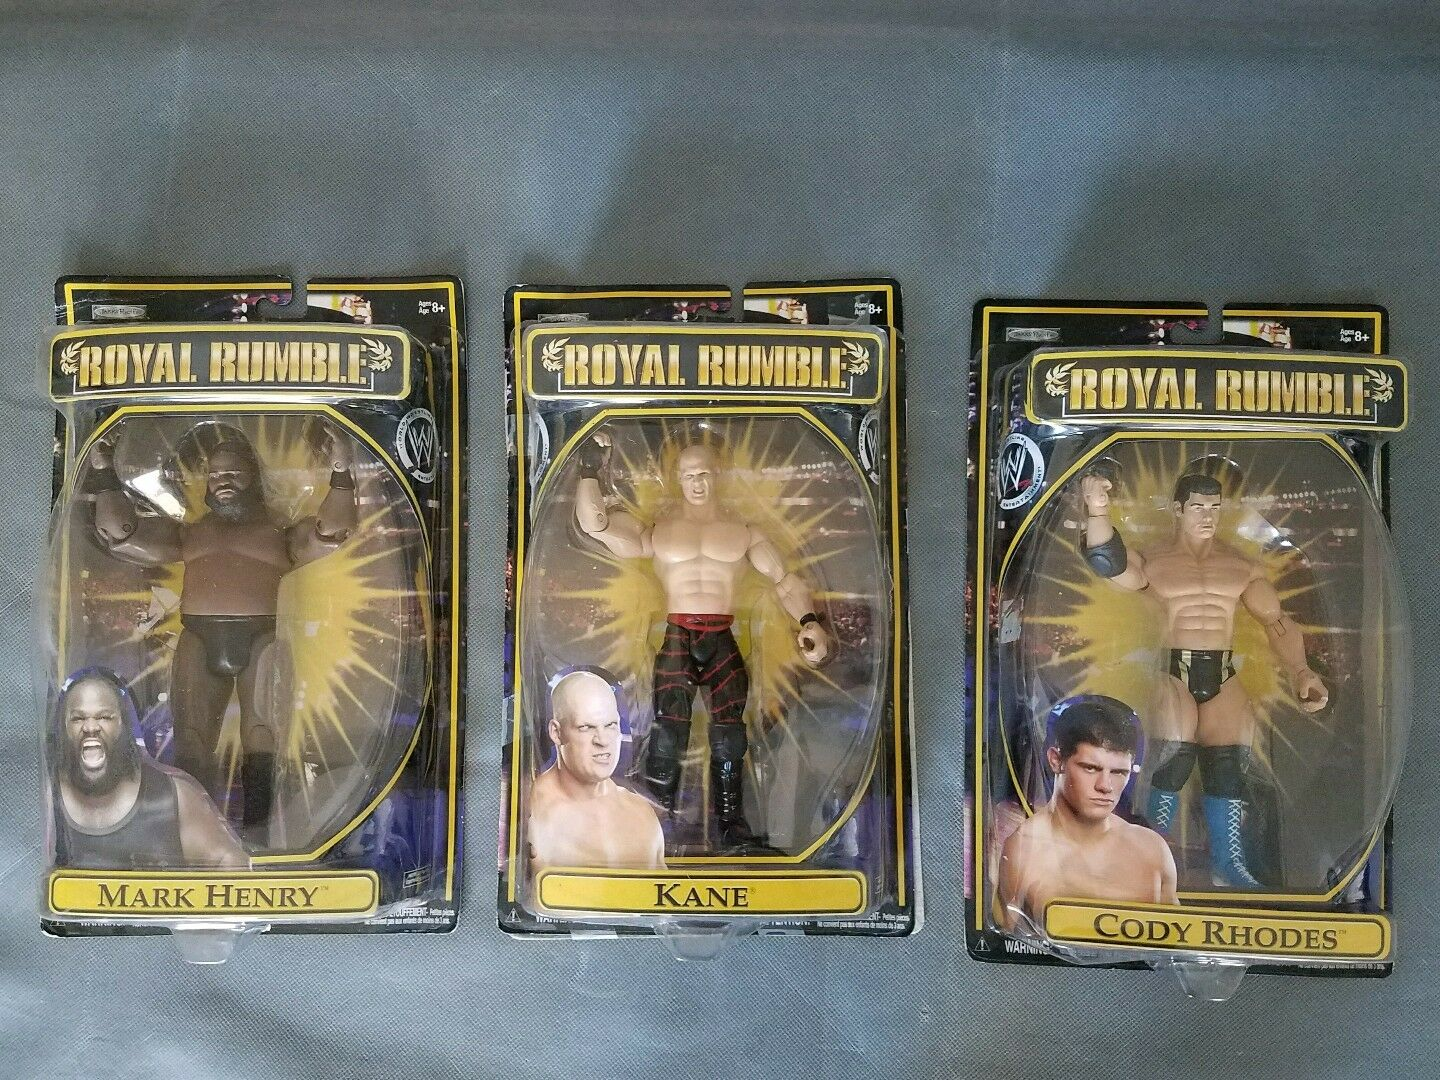 Royal rumble 2009 action figure Lot Kane, Mark Henry, Cody Rhodes